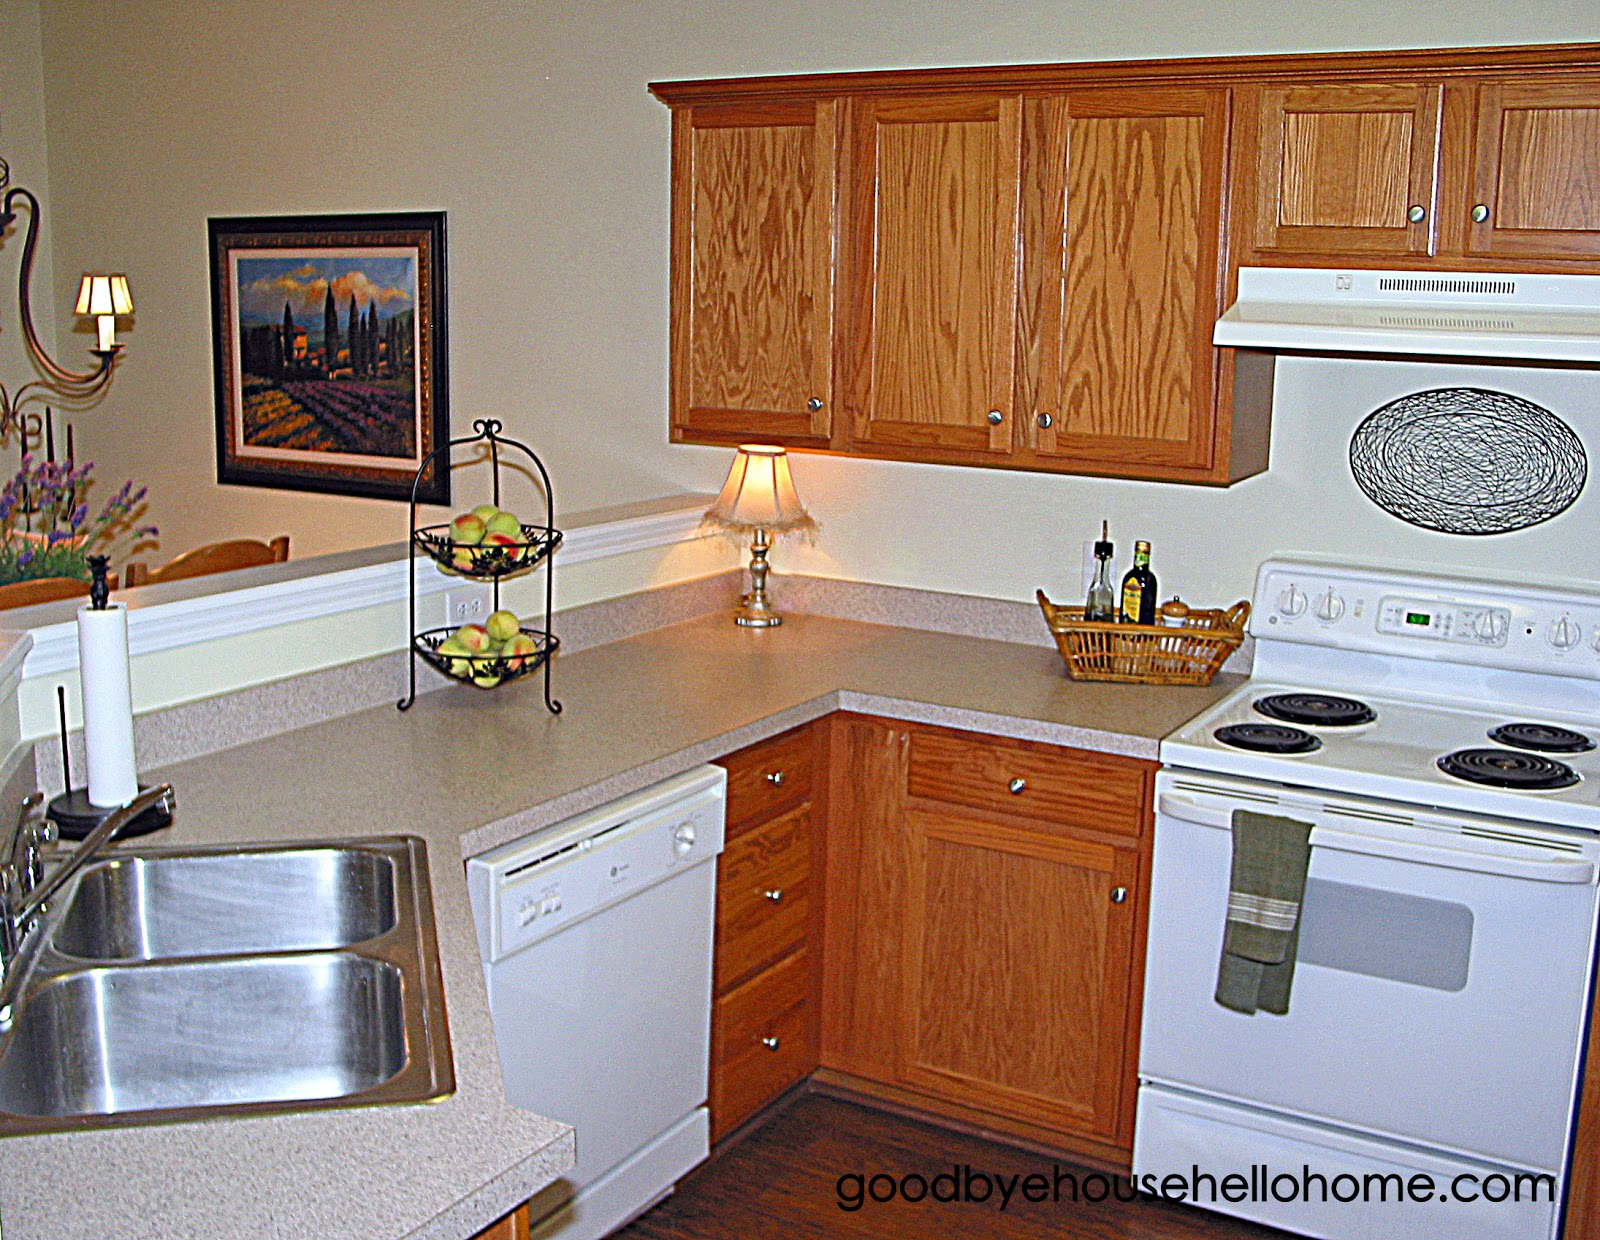 Kitchen Staging Goodbye House Hello Home Blog 31 Days To A Staged Home